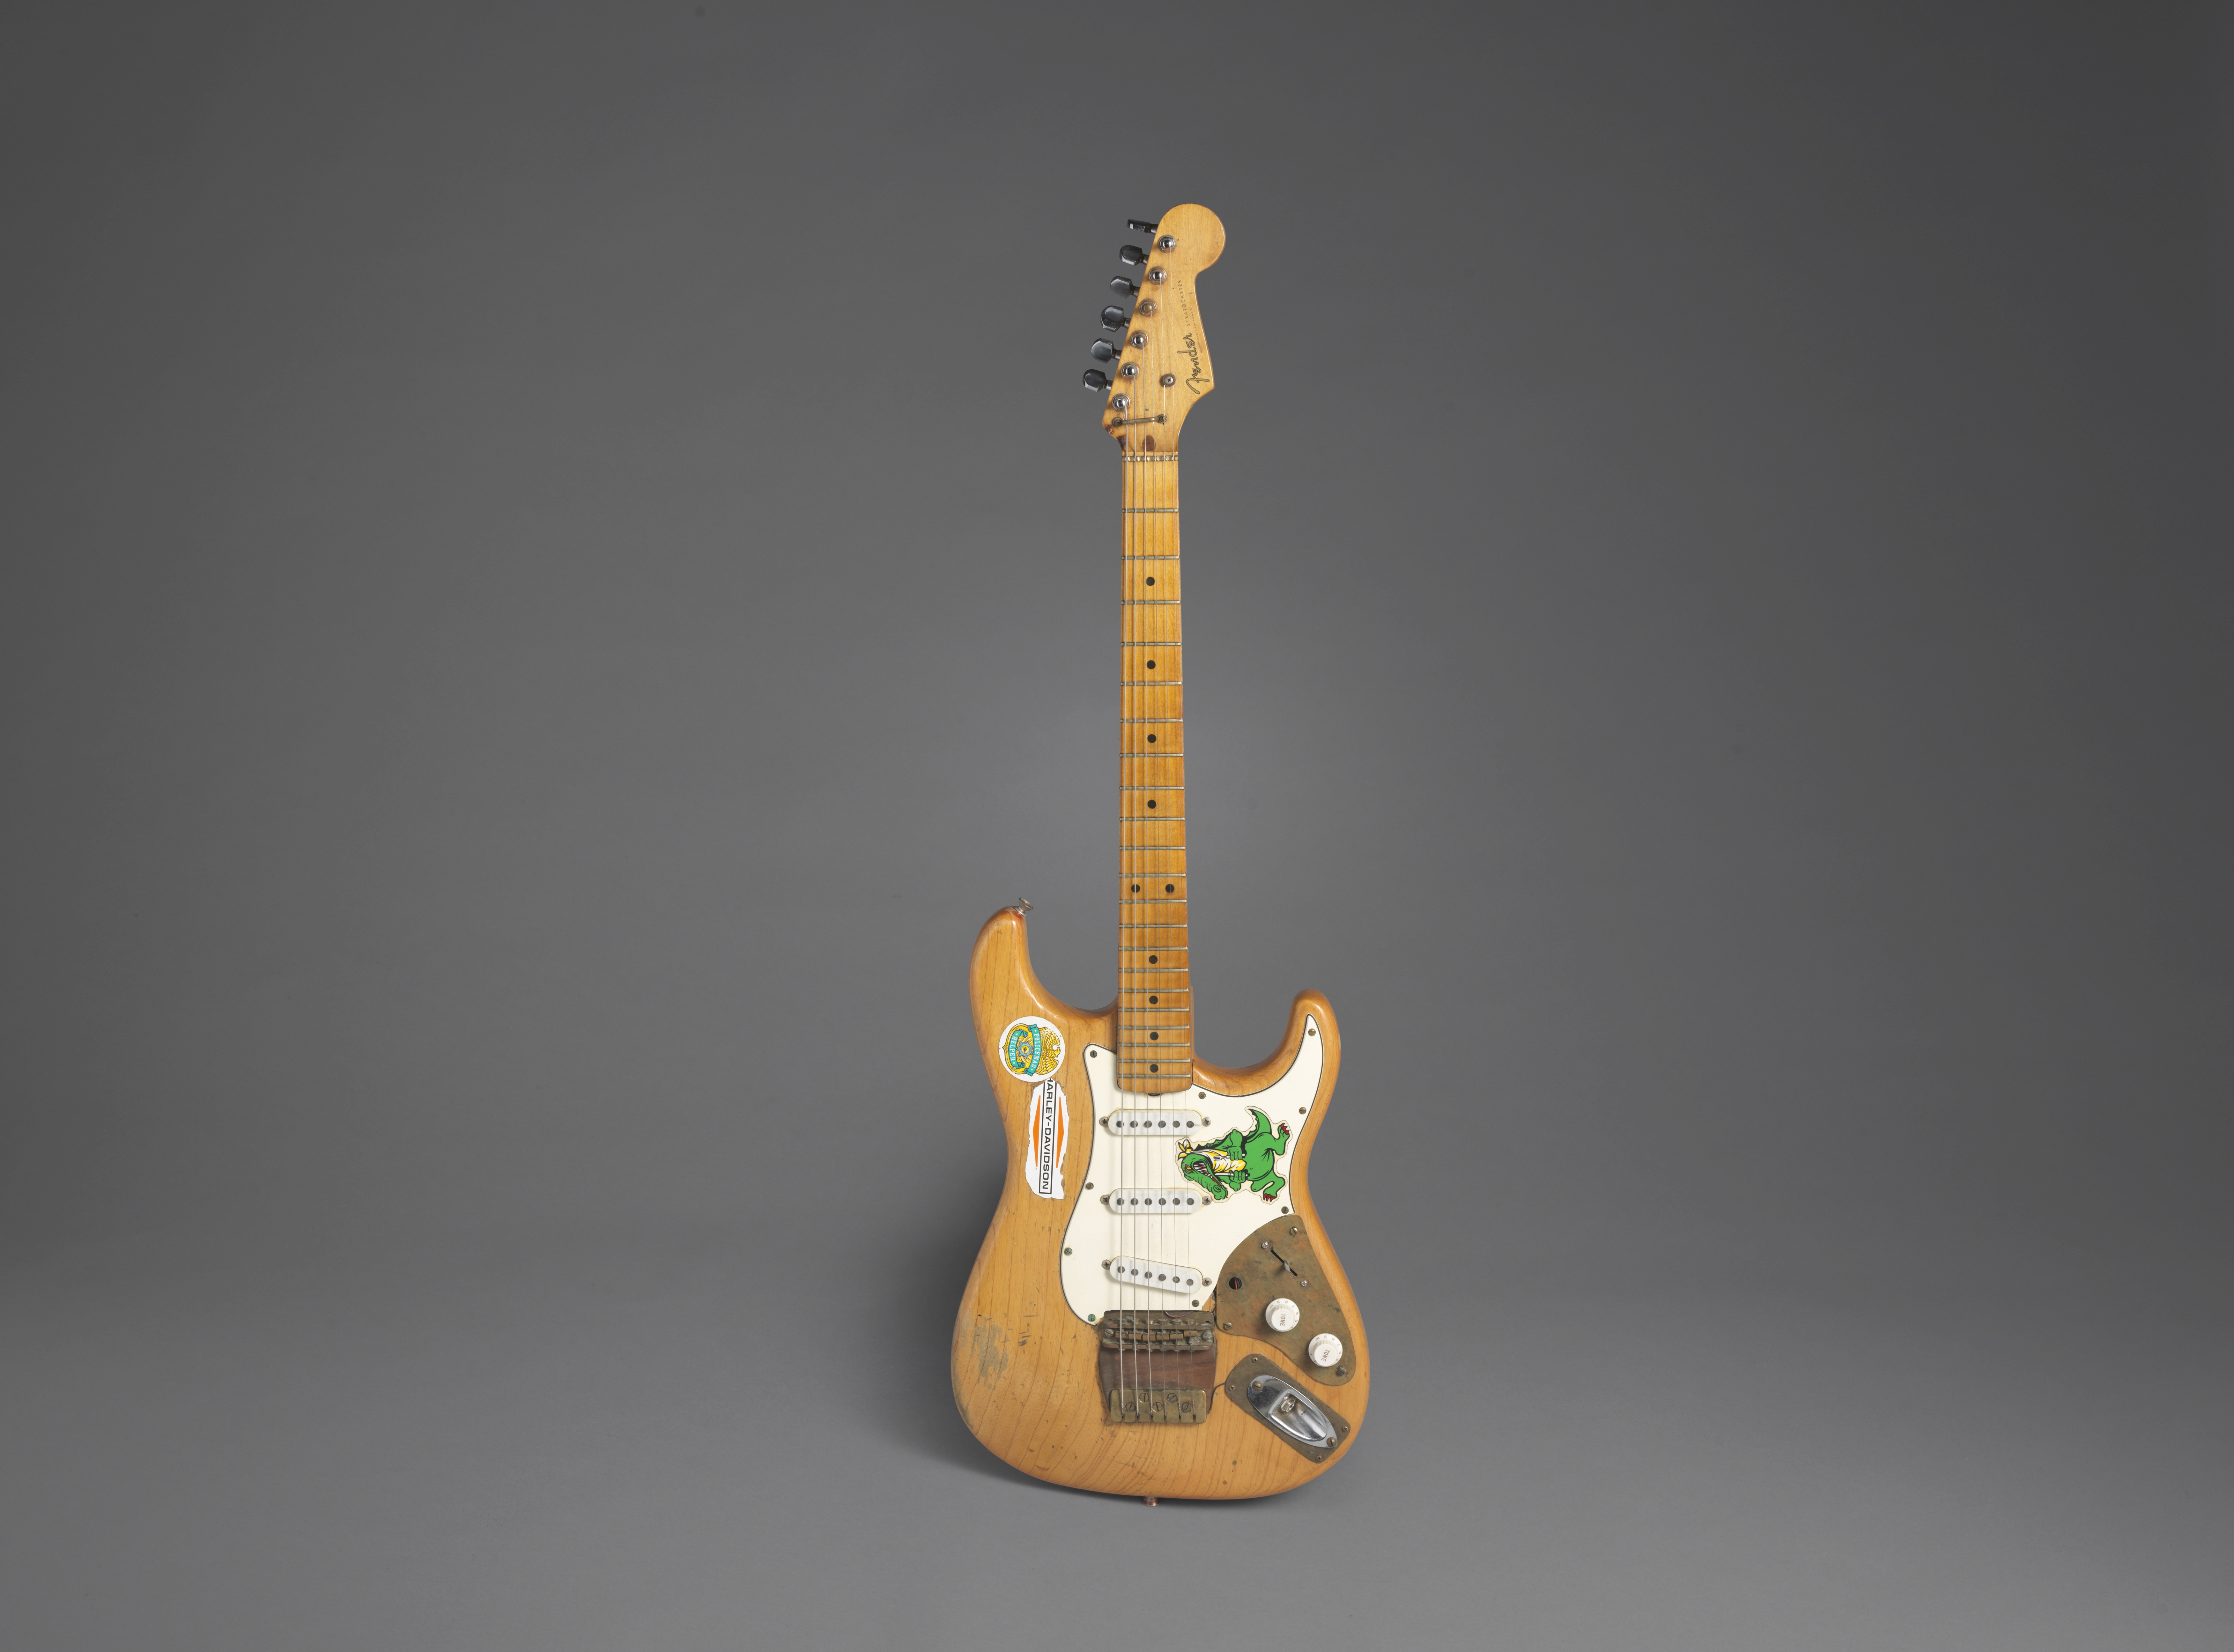 Lot 323 - ALLIGATOR! A FENDER STRATOCASTER OWNED AND PLAYED BY JERRY GARCIA OF THE GRATEFUL DEAD